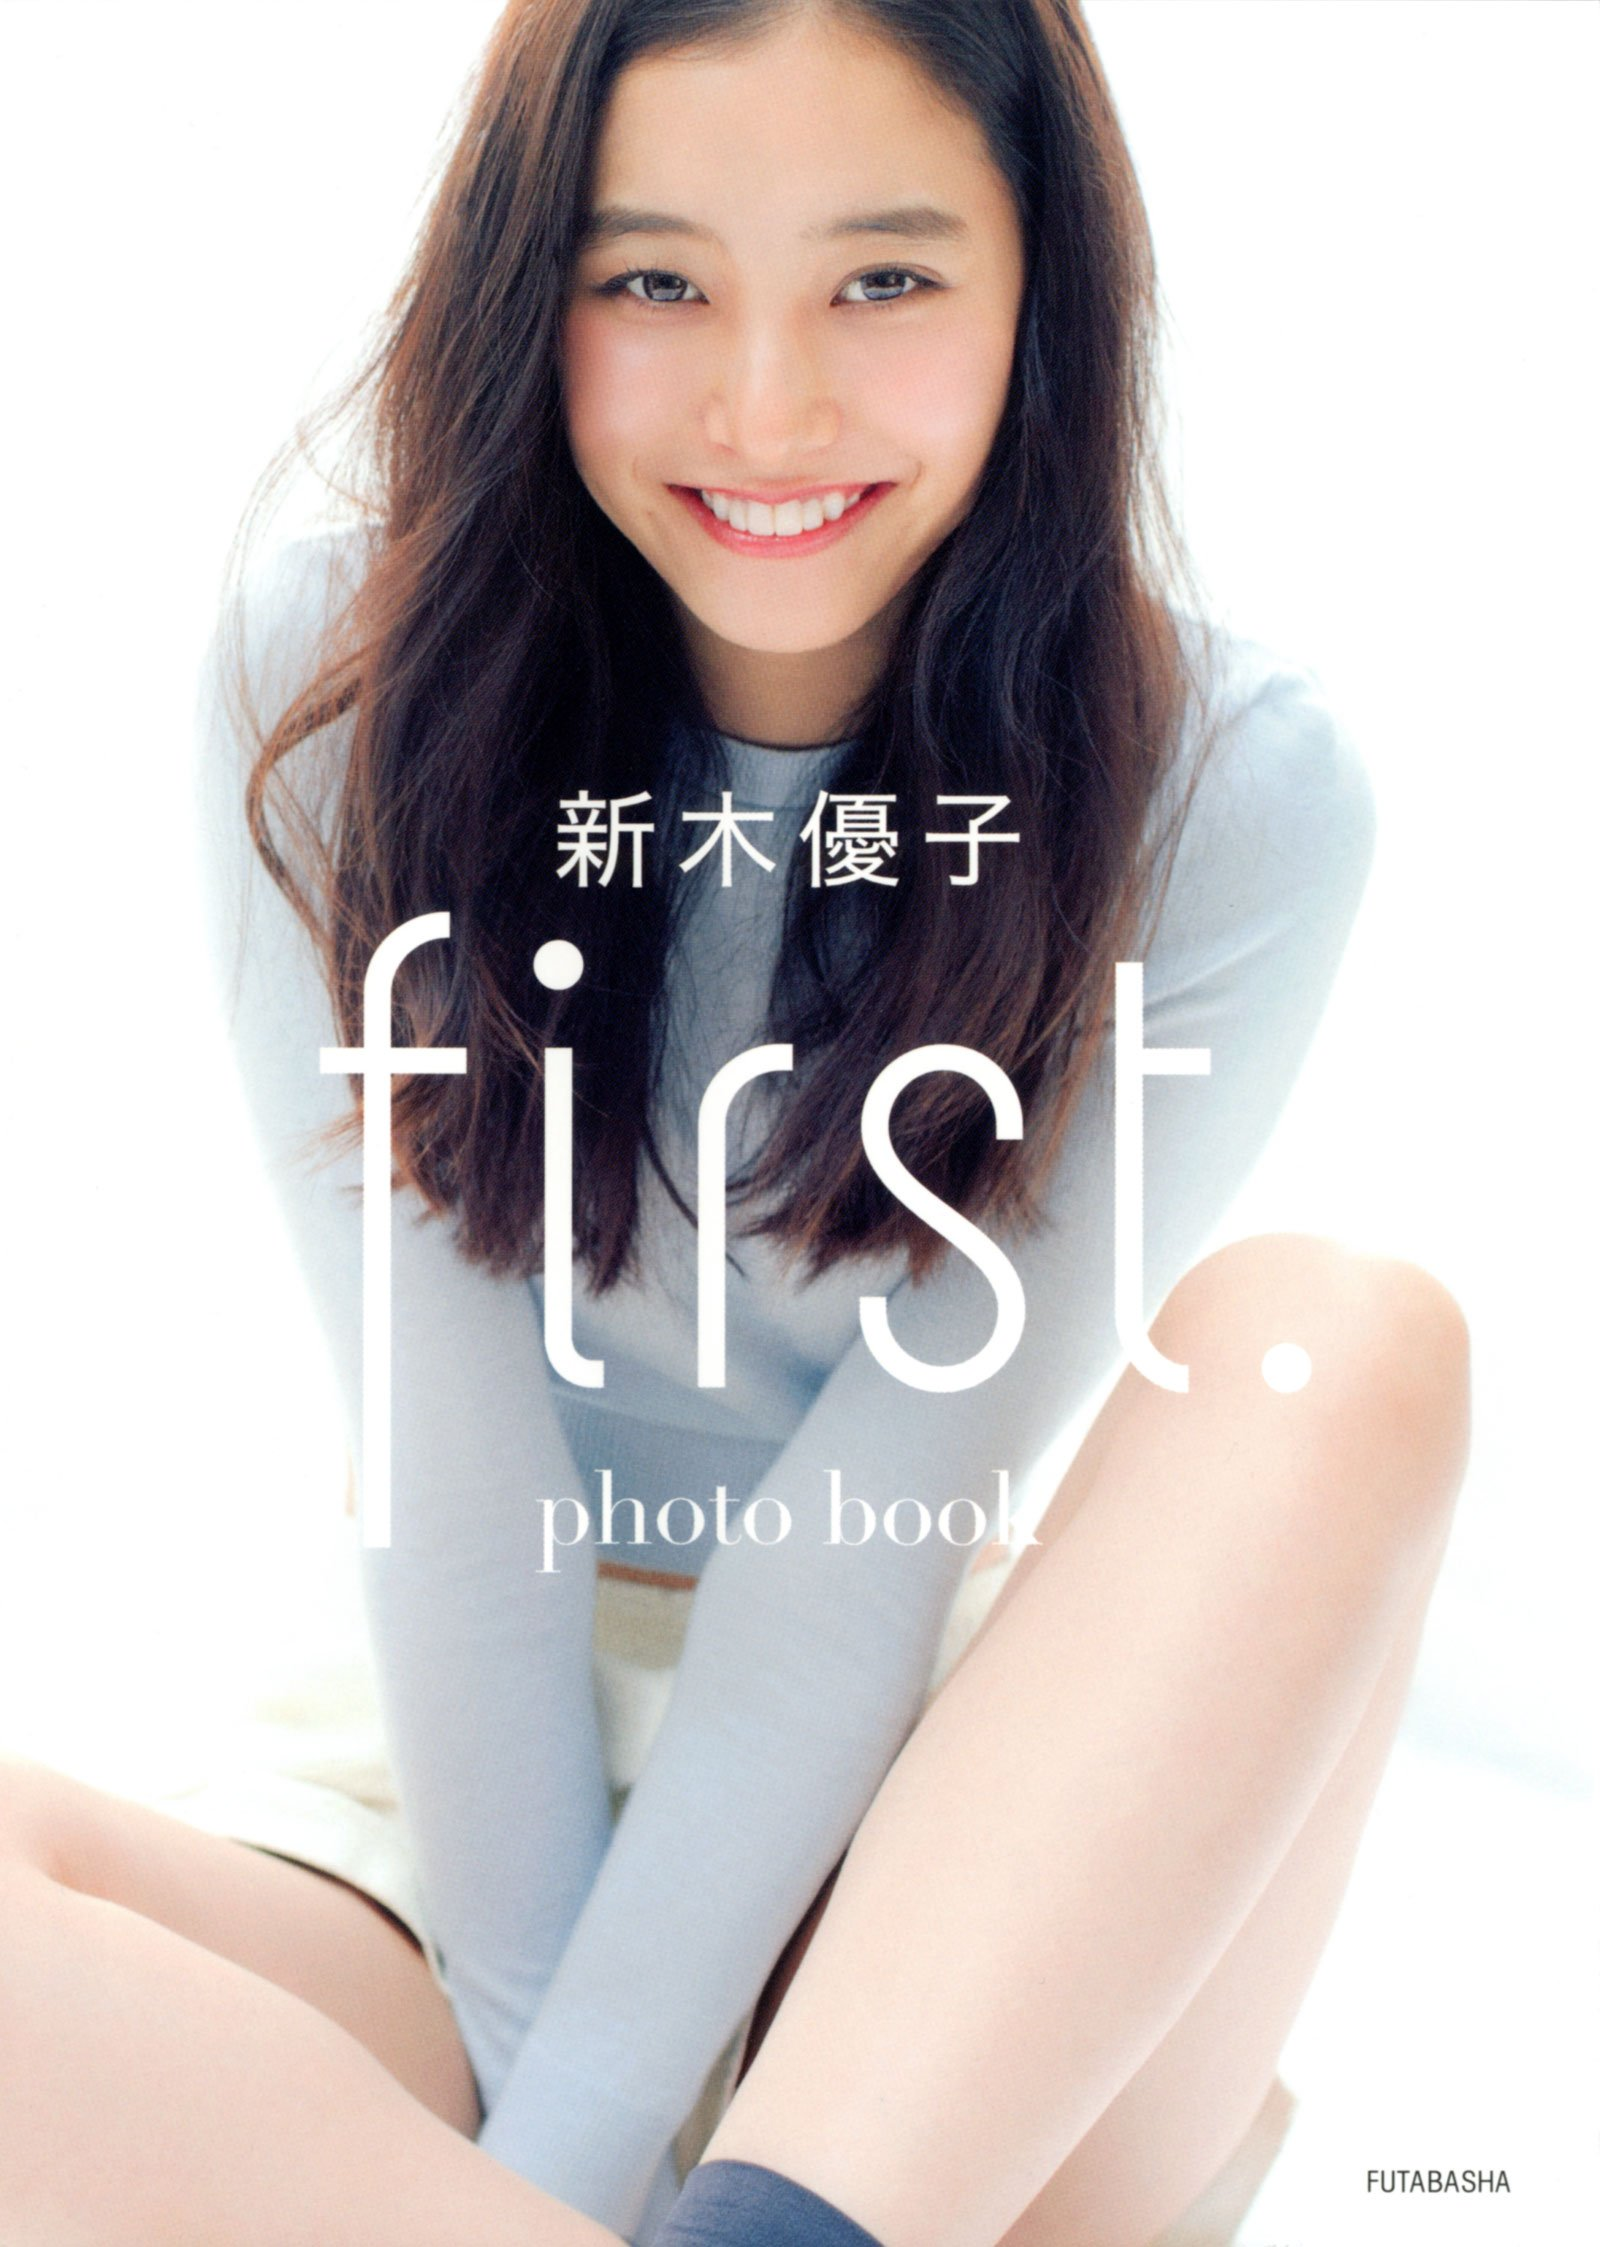 新木優子 photo book first. | ...